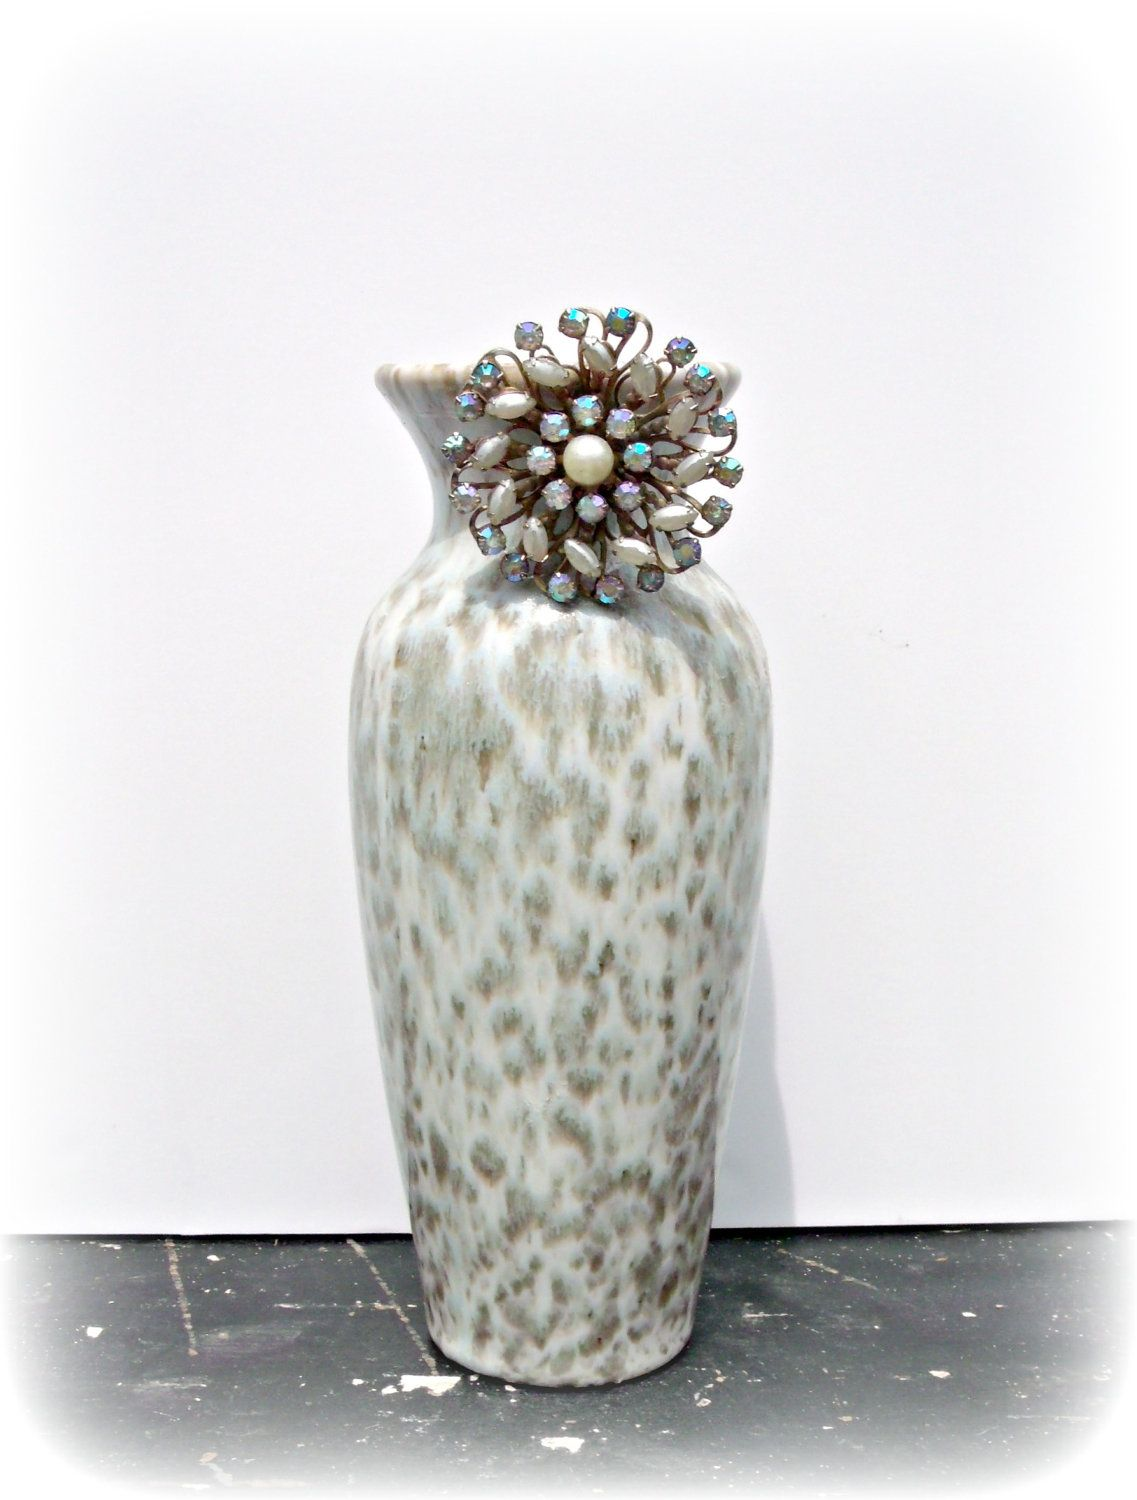 Vintage Ceramic Vase with Pearl and Rhinestone Broach- Vintage Pottery-Embellished Decor. $40.00, via Etsy.  https://www.etsy.com/listing/100311623/vintage-ceramic-vase-with-pearl-and